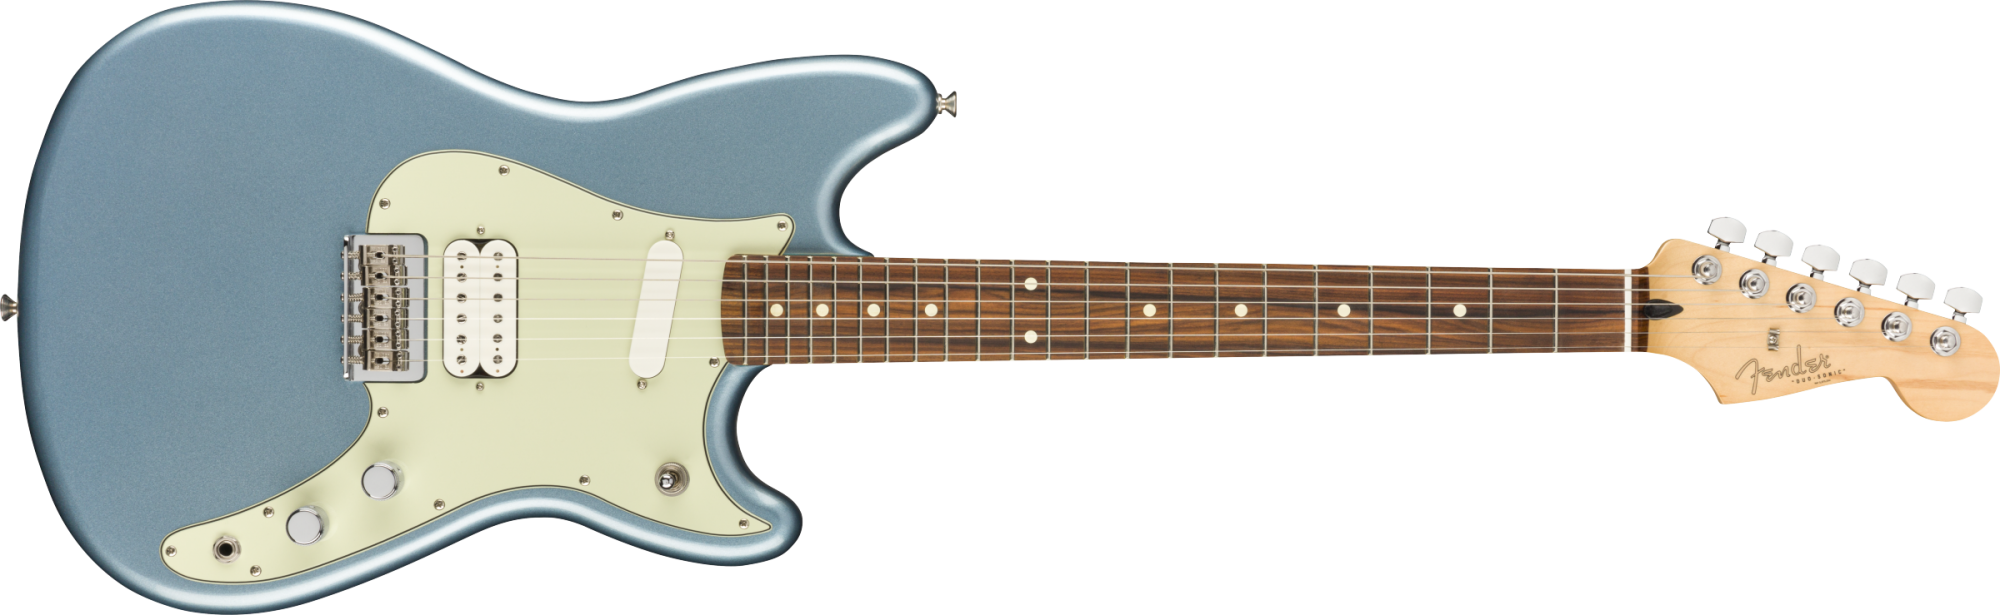 Fender Player Duo Sonic HS - Pao Ferro Fingerboard - Ice Blue Metalic